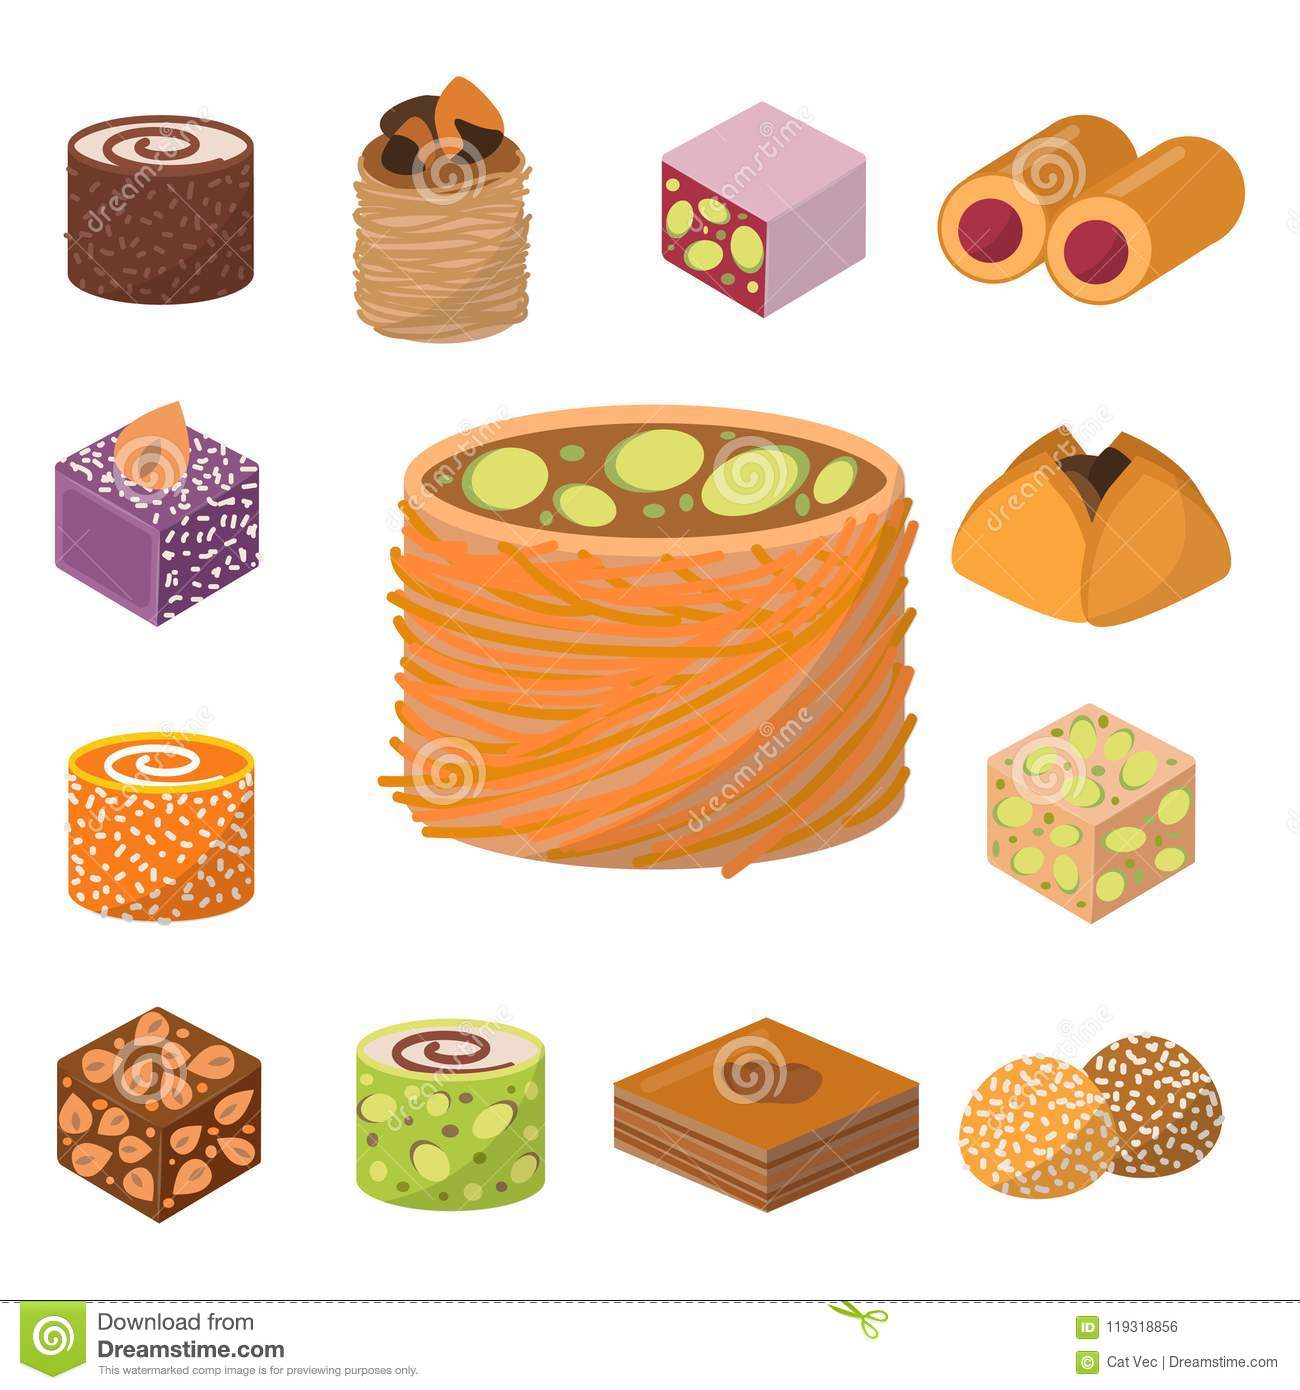 Sweets east delicious dessert food vector confectionery homemade assortment chocolate cake tasty bakery sweetness